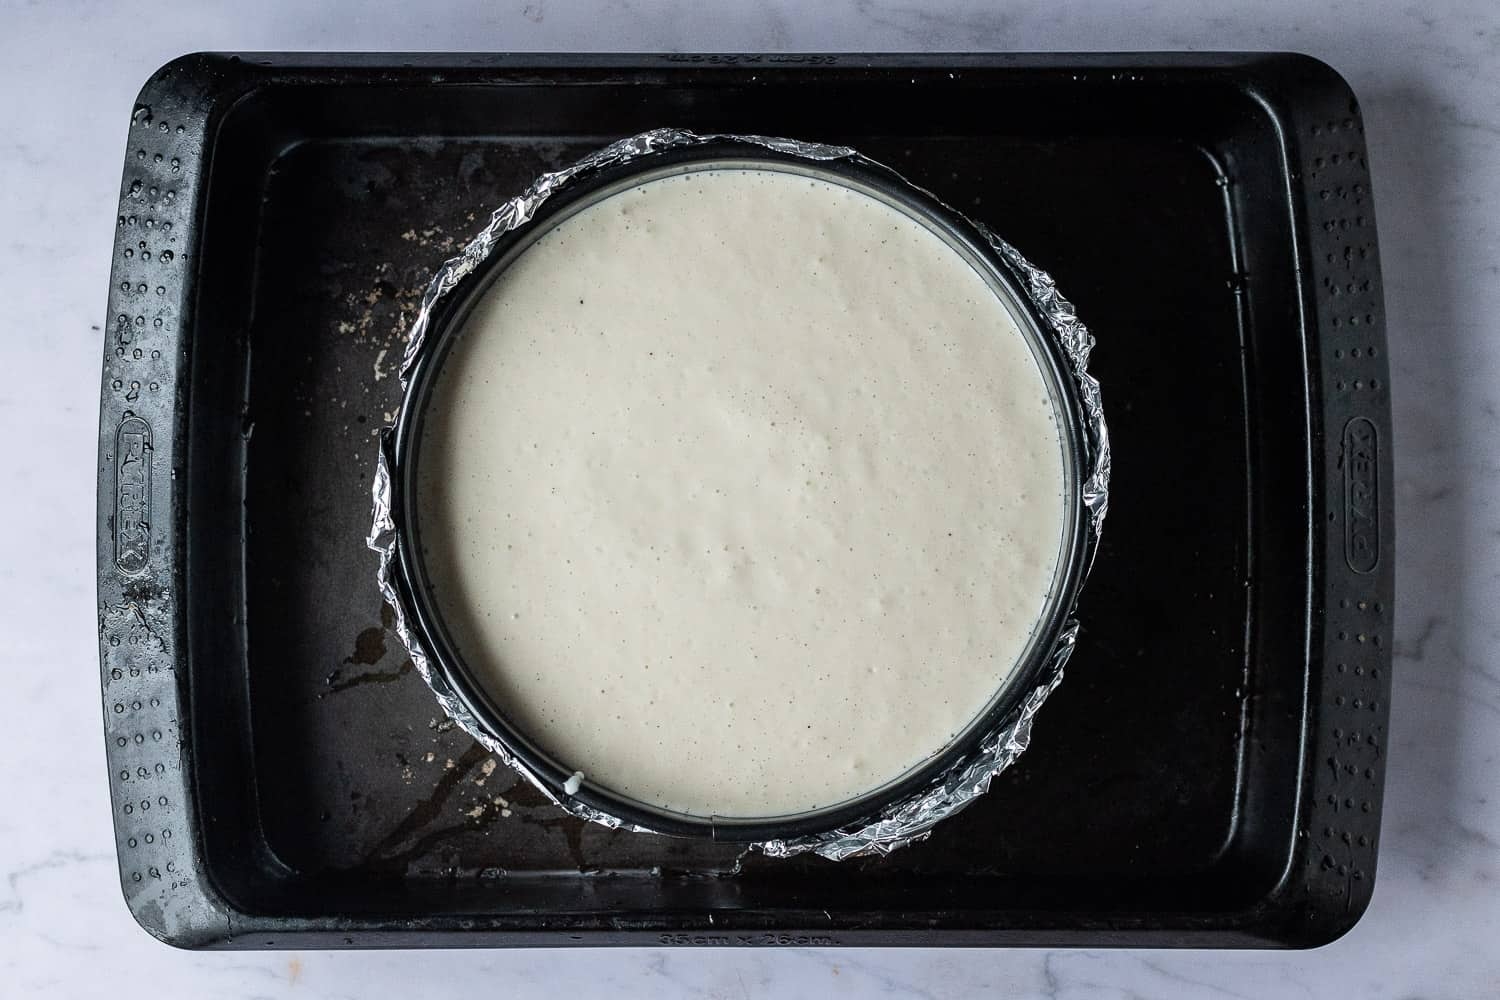 step 4 - prepping the cheesecake to bake